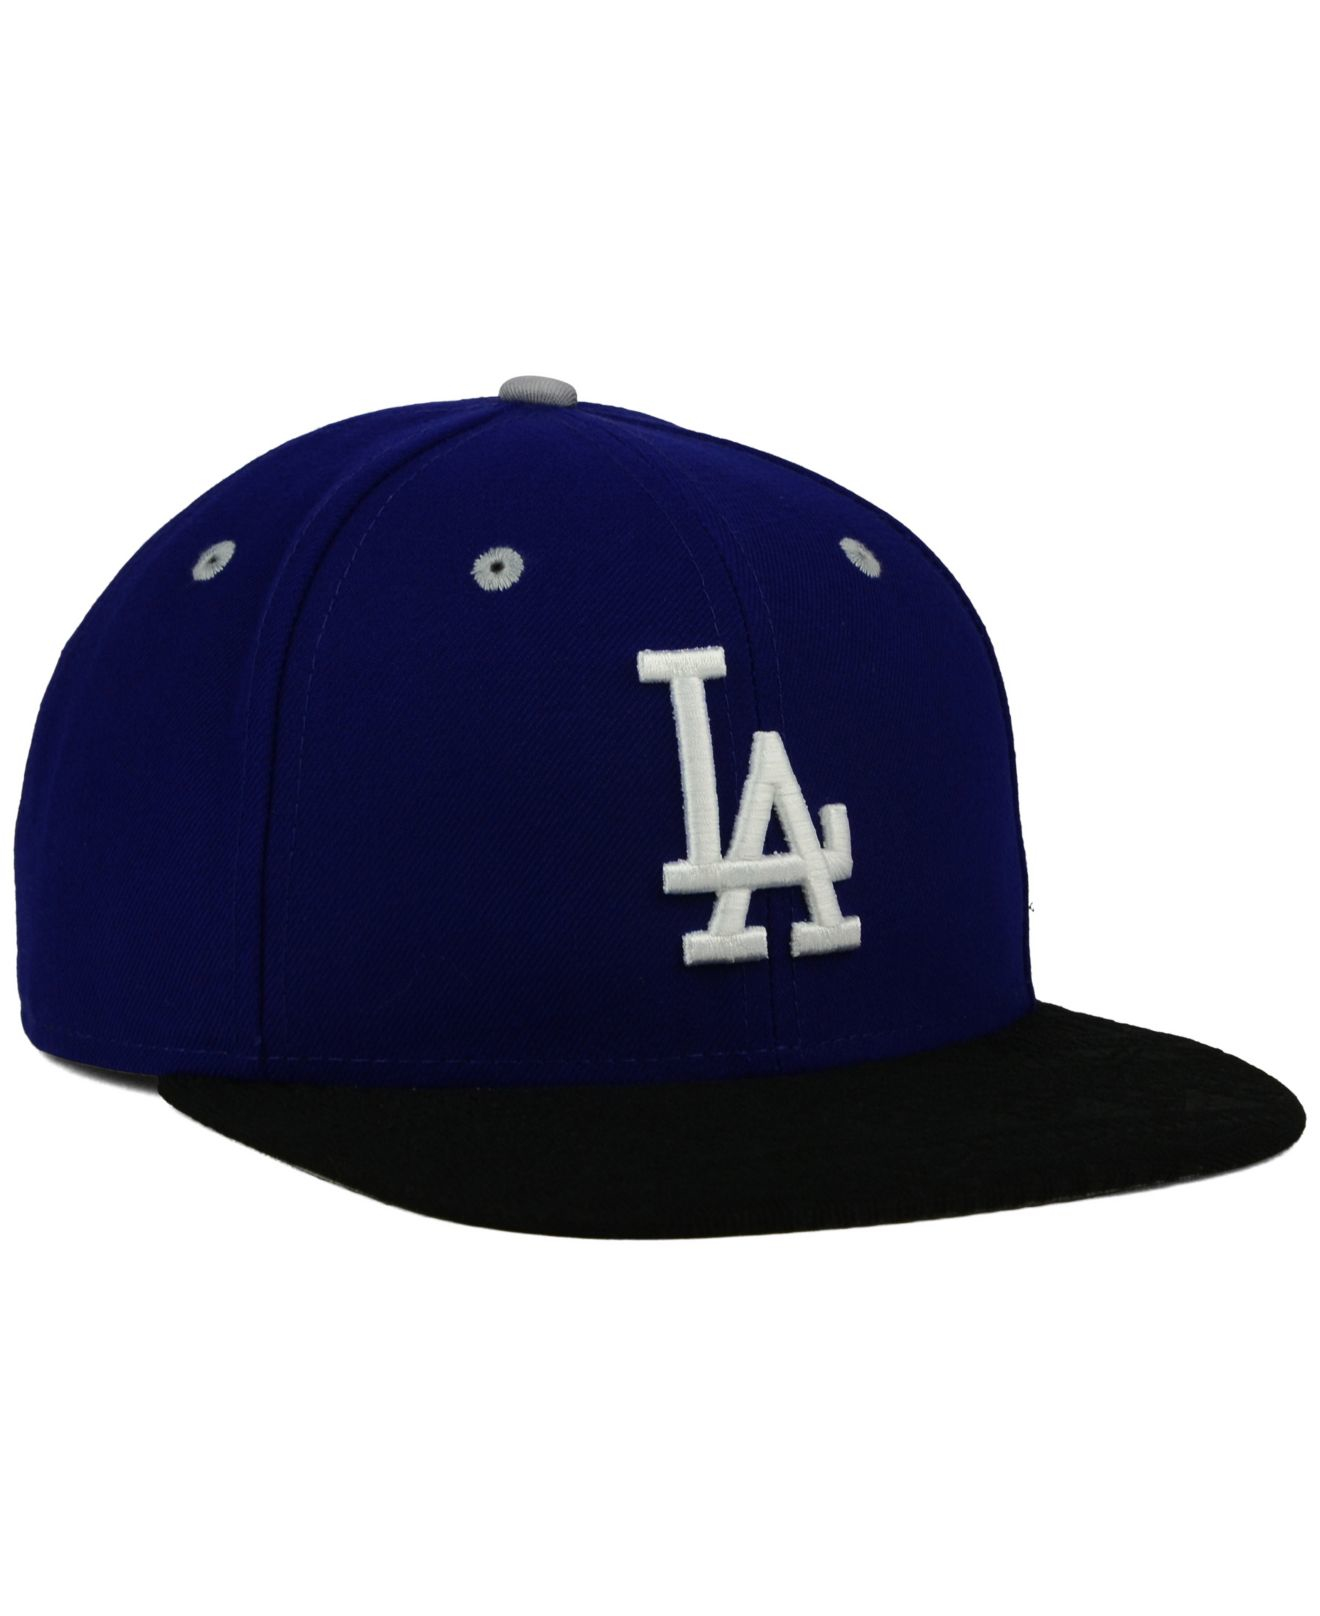 newest 36f33 b38fe ... sale lyst ktz los angeles dodgers tone 9fifty snapback cap in blue for  men b98ed 0d06d